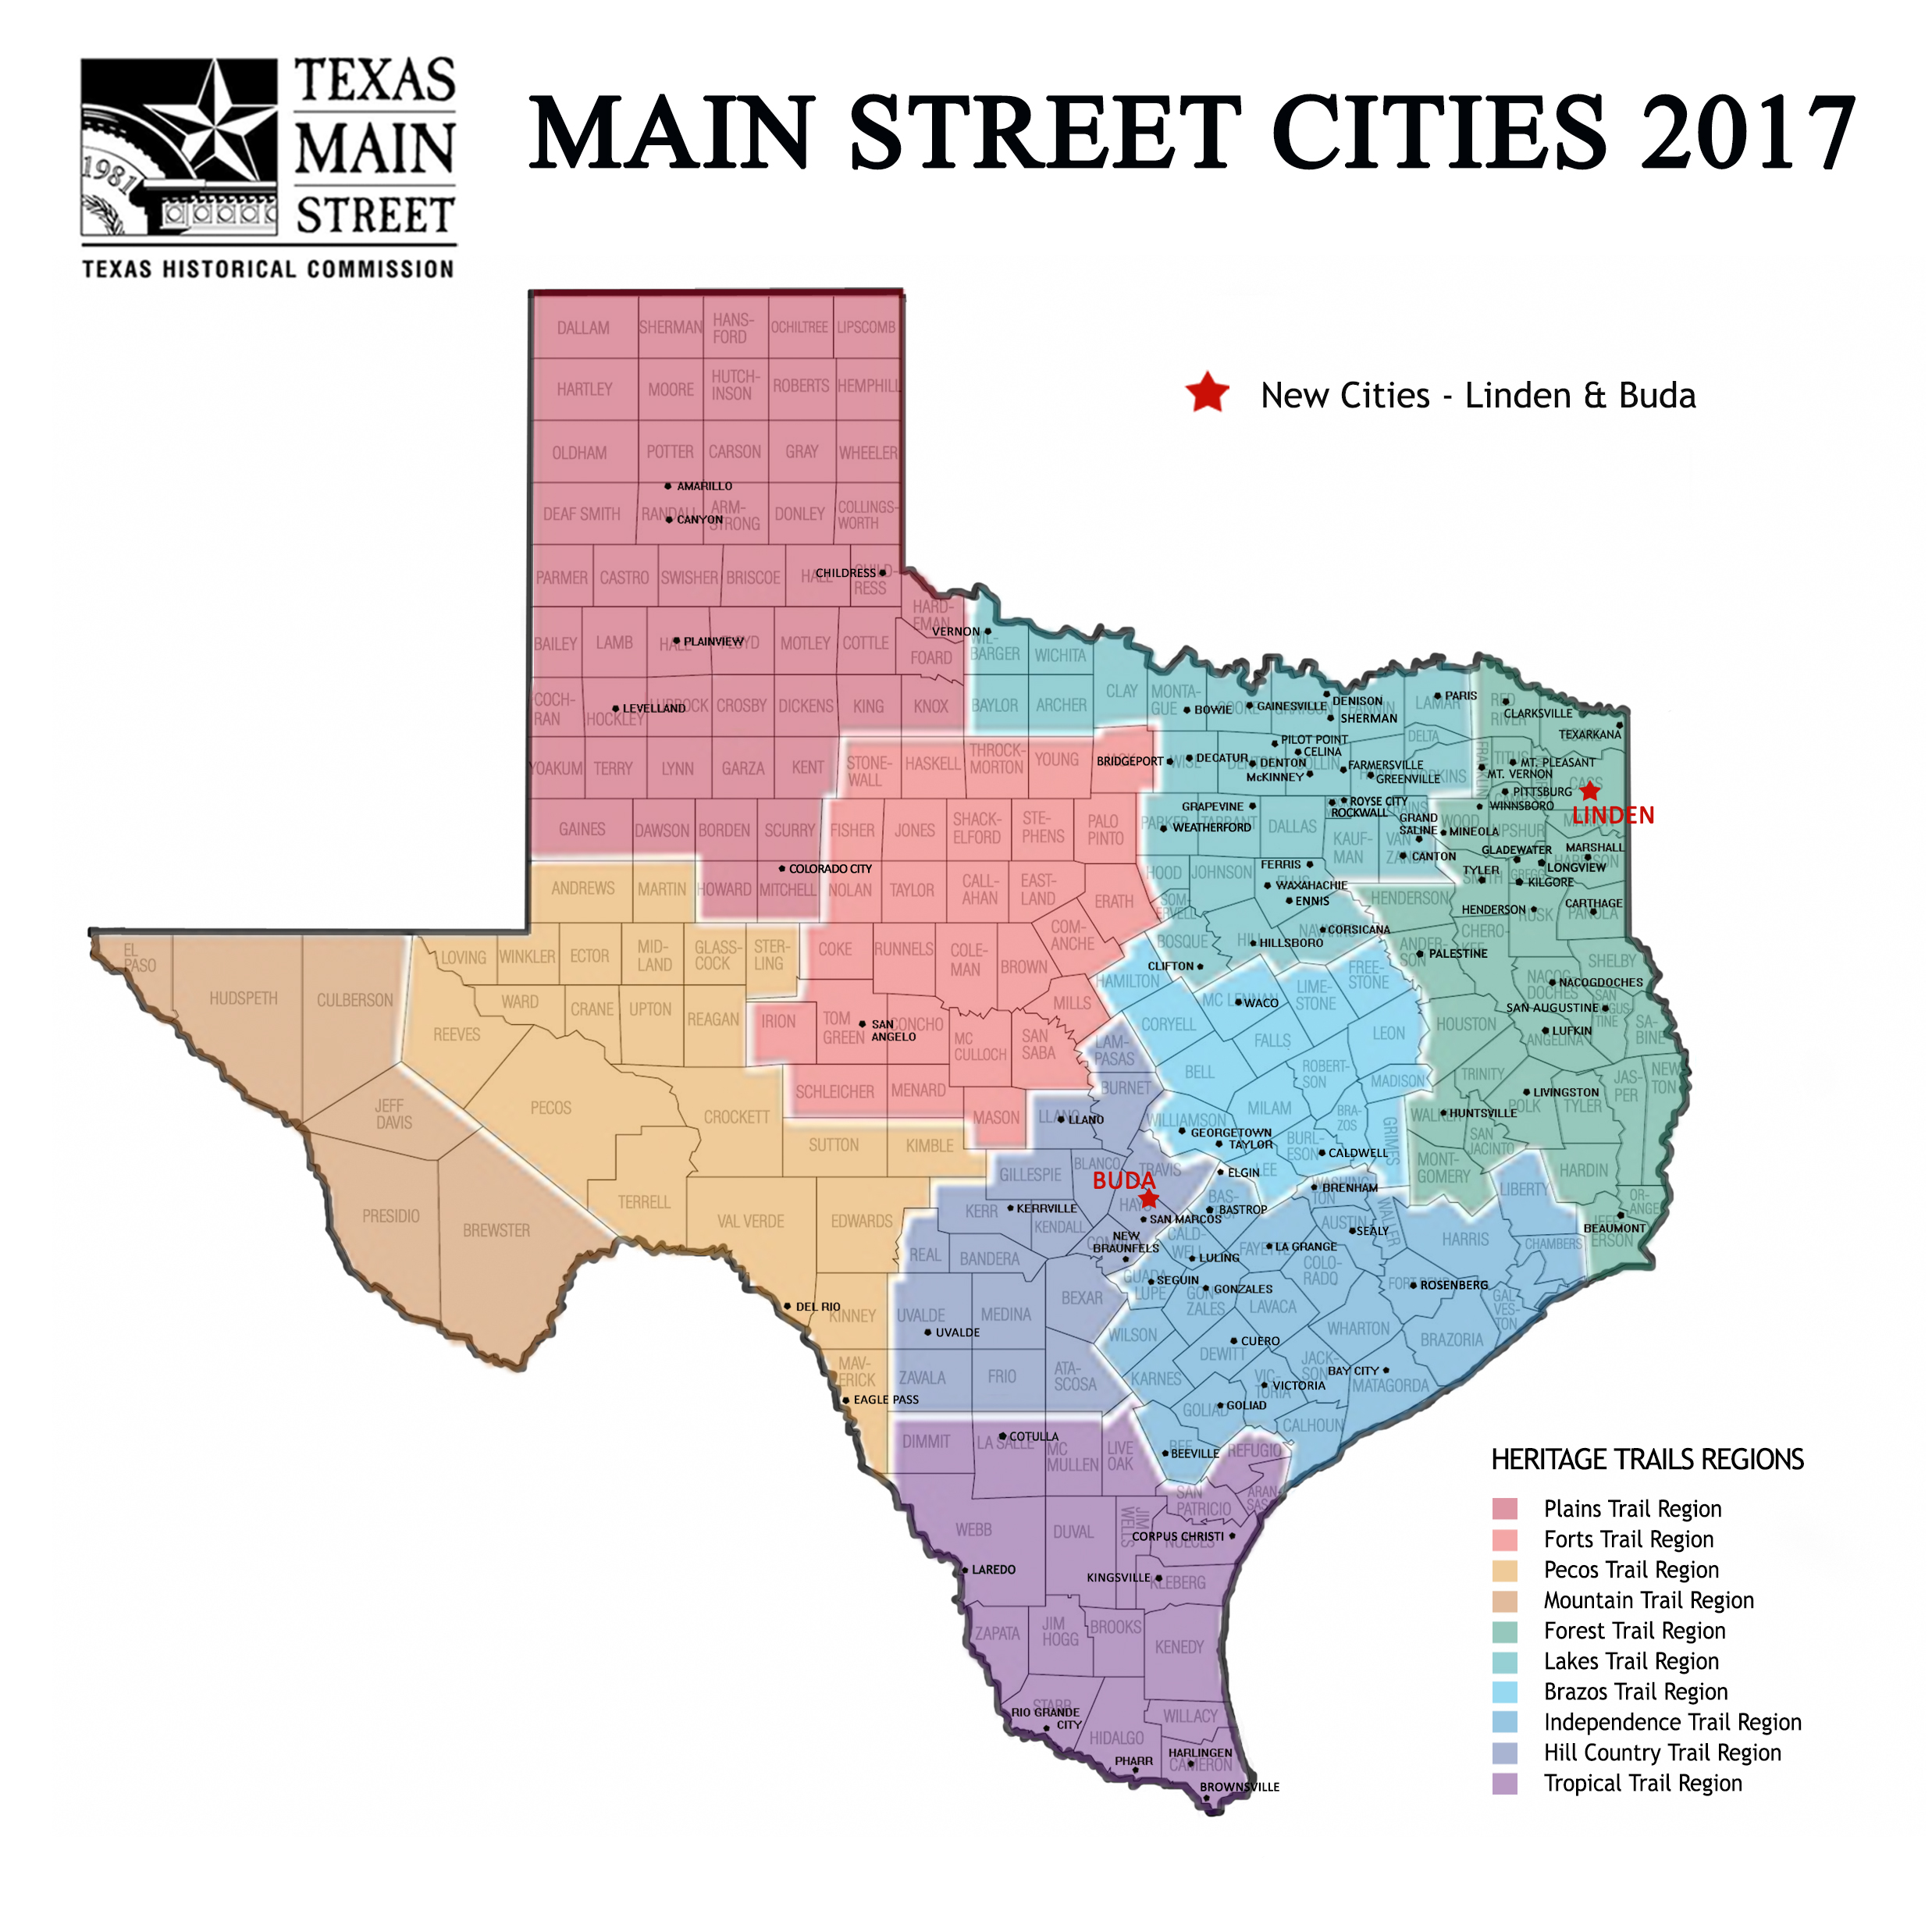 Multi Color Texas Map With Counties Capitals And Major Cities - Texas map with cities and counties